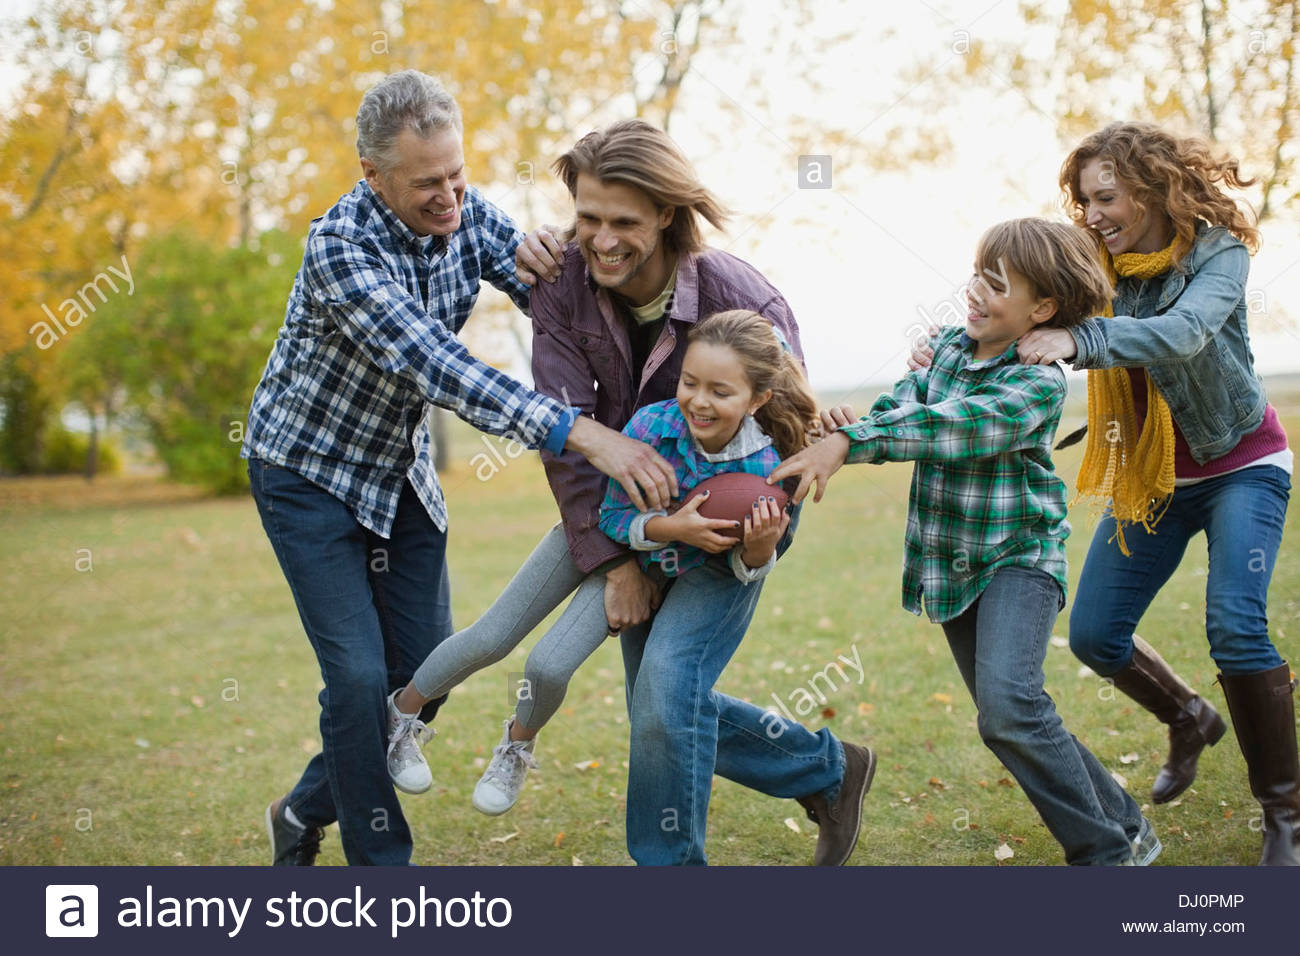 Happy multi-generation family playing American football in park - Stock Image